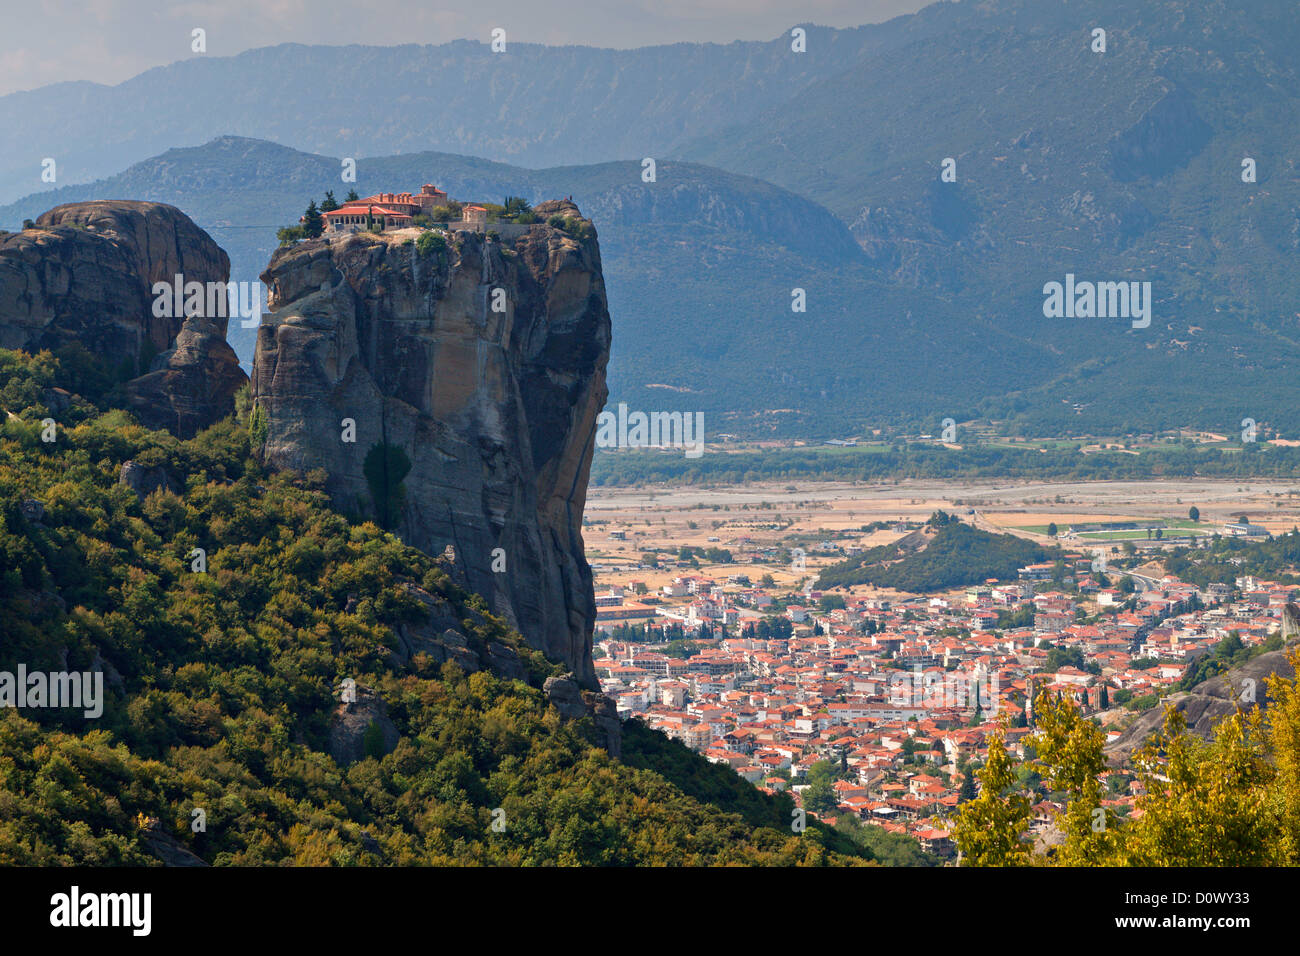 Monastery of saint Trinity at Meteora of Kalambaka in Greece and view of the city below the rocks - Stock Image